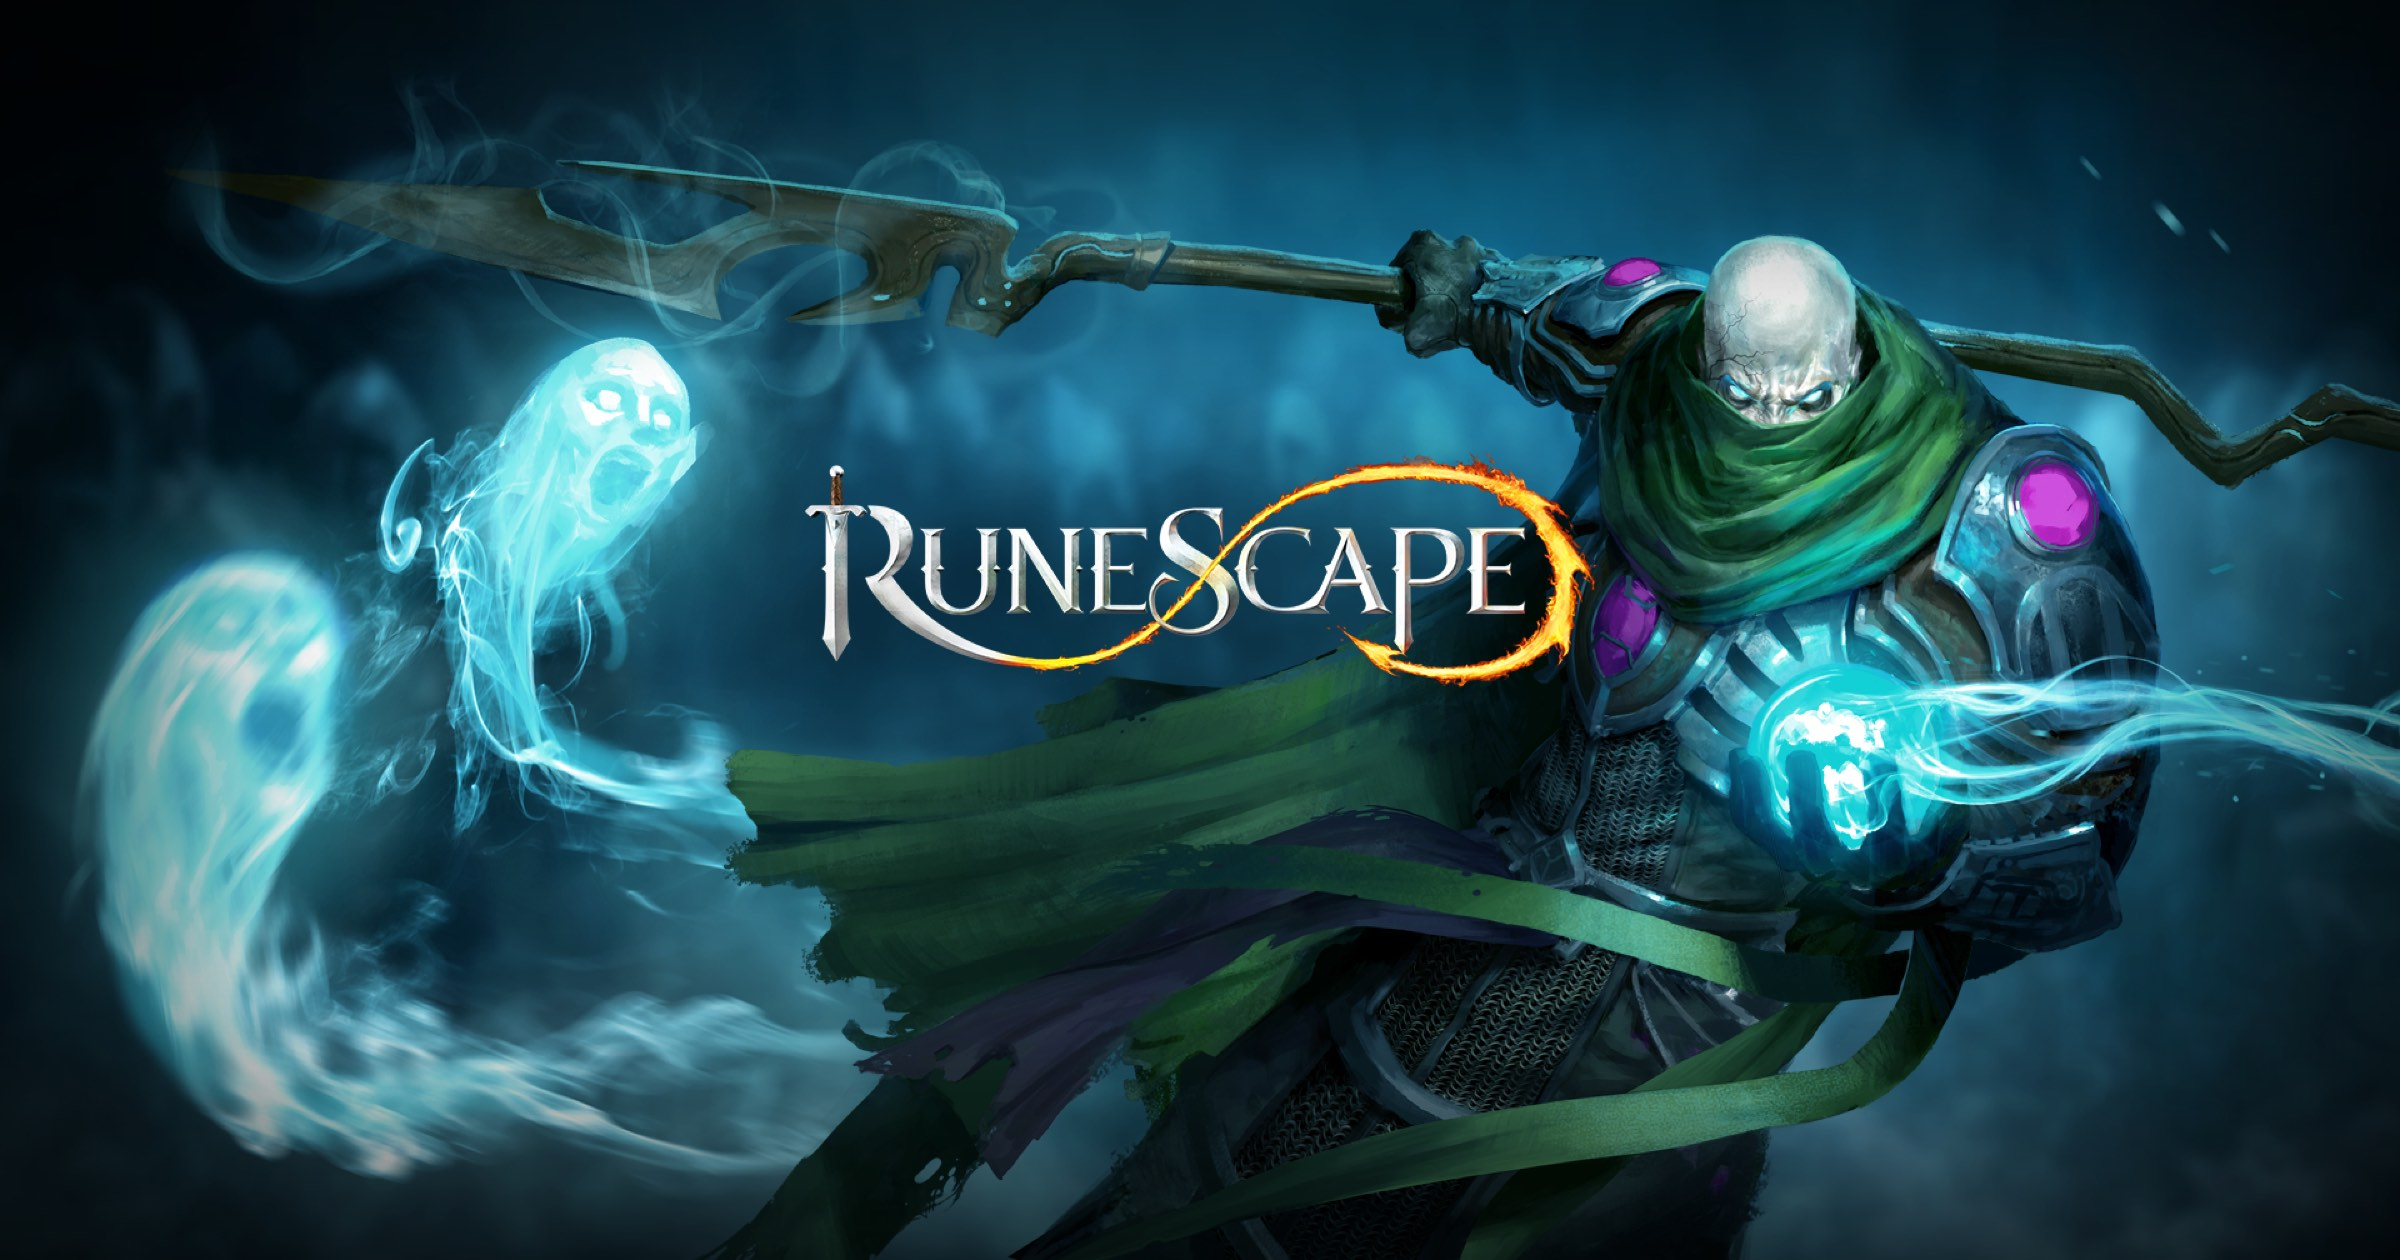 Full RuneScape is Now Available for iPhone and iPad